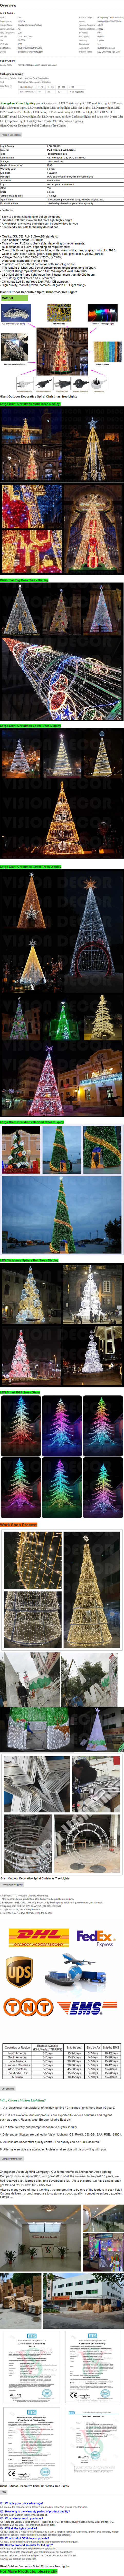 Giant Outdoor Decorative Spiral Christmas Tree Lights